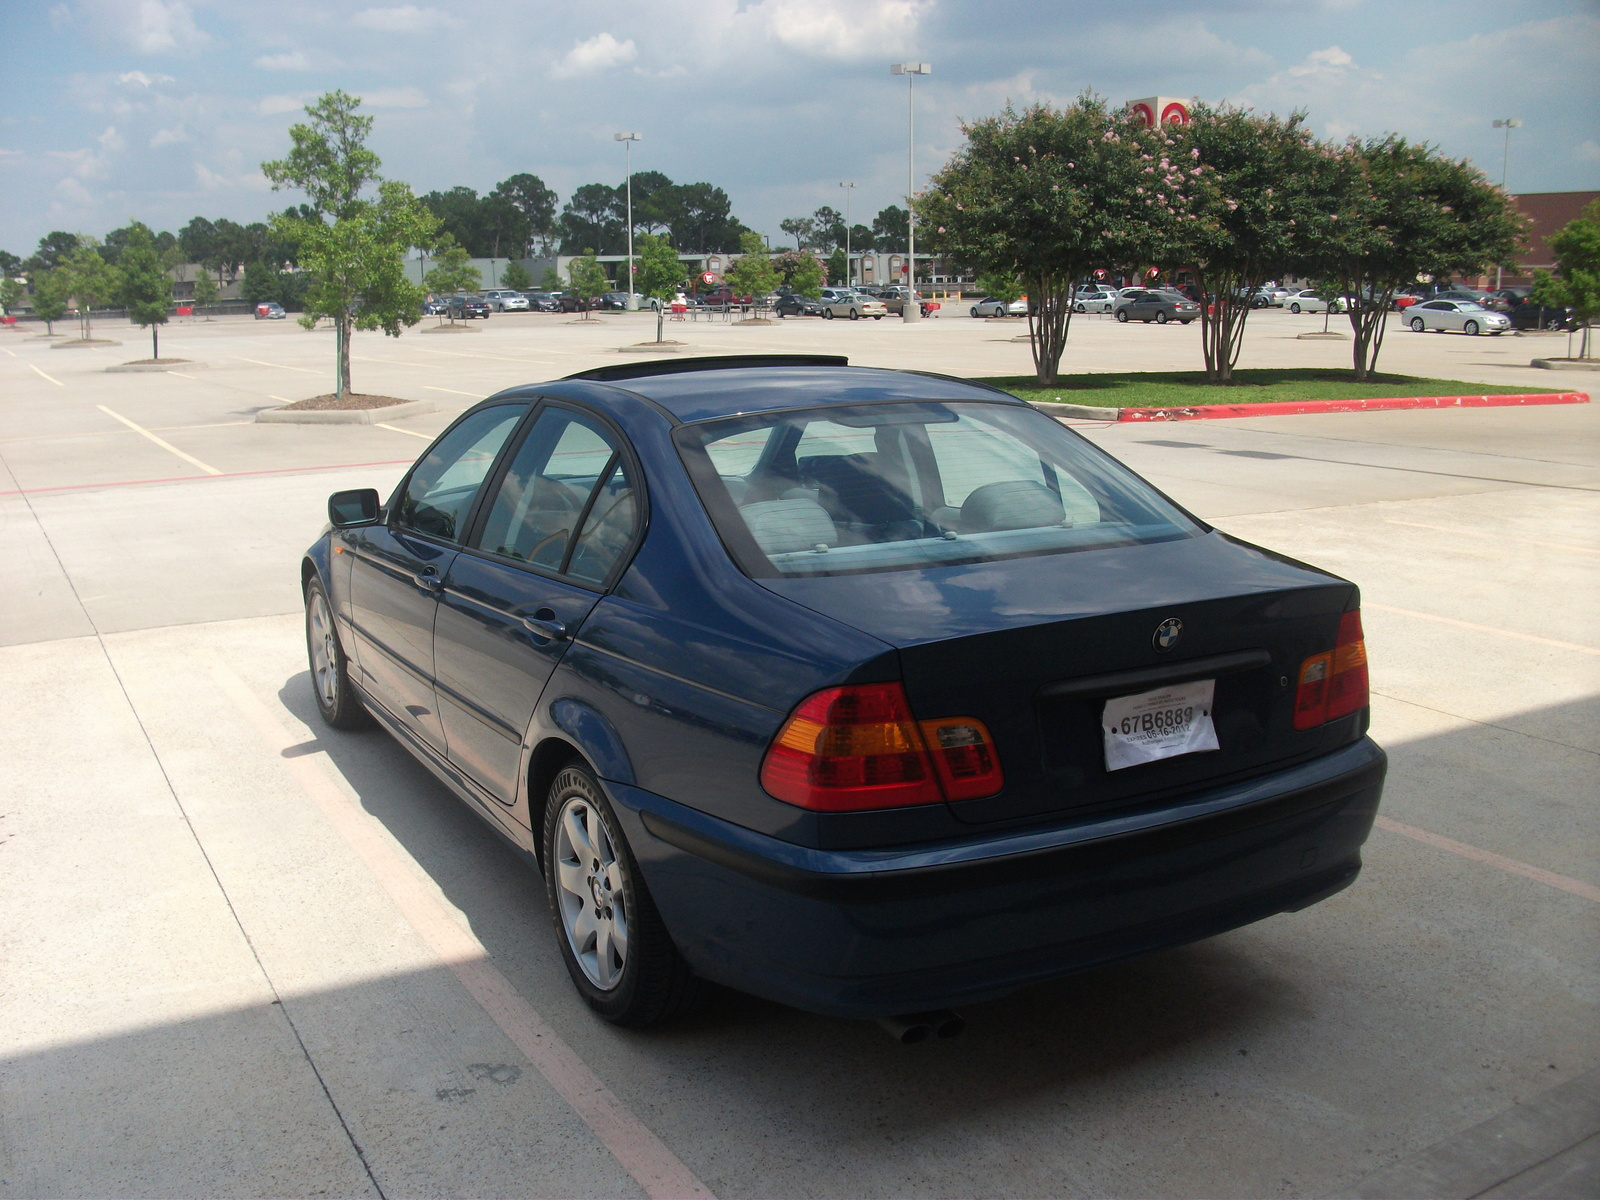 BMW 3 series 325i 2002 photo - 10